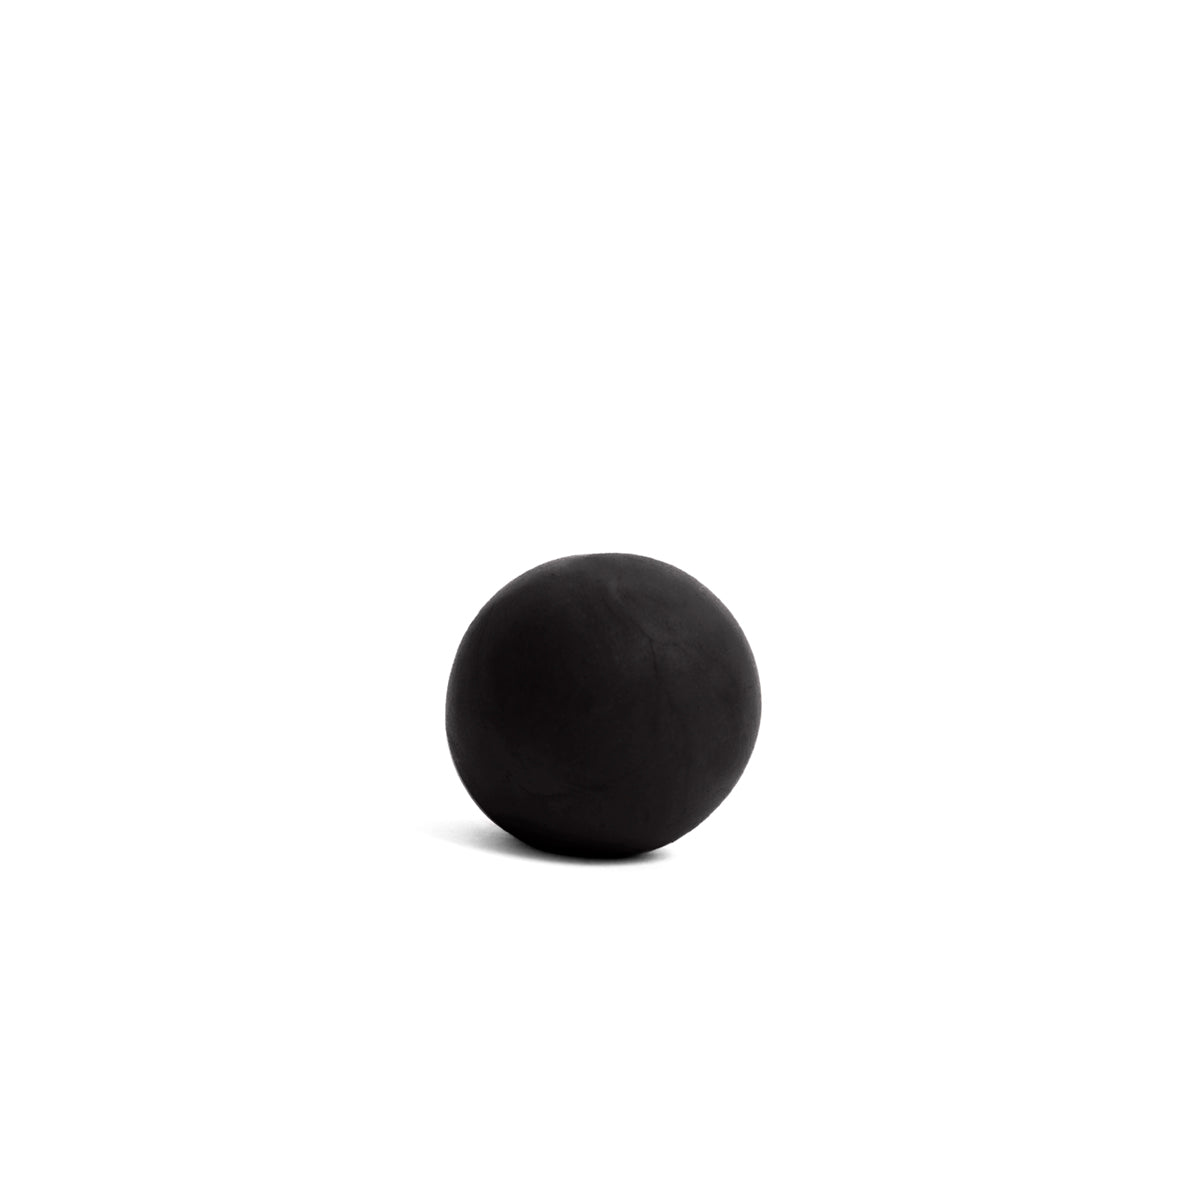 Black Vanilla Fondant - 4.4oz. Foil Box of 12 - Satin Ice